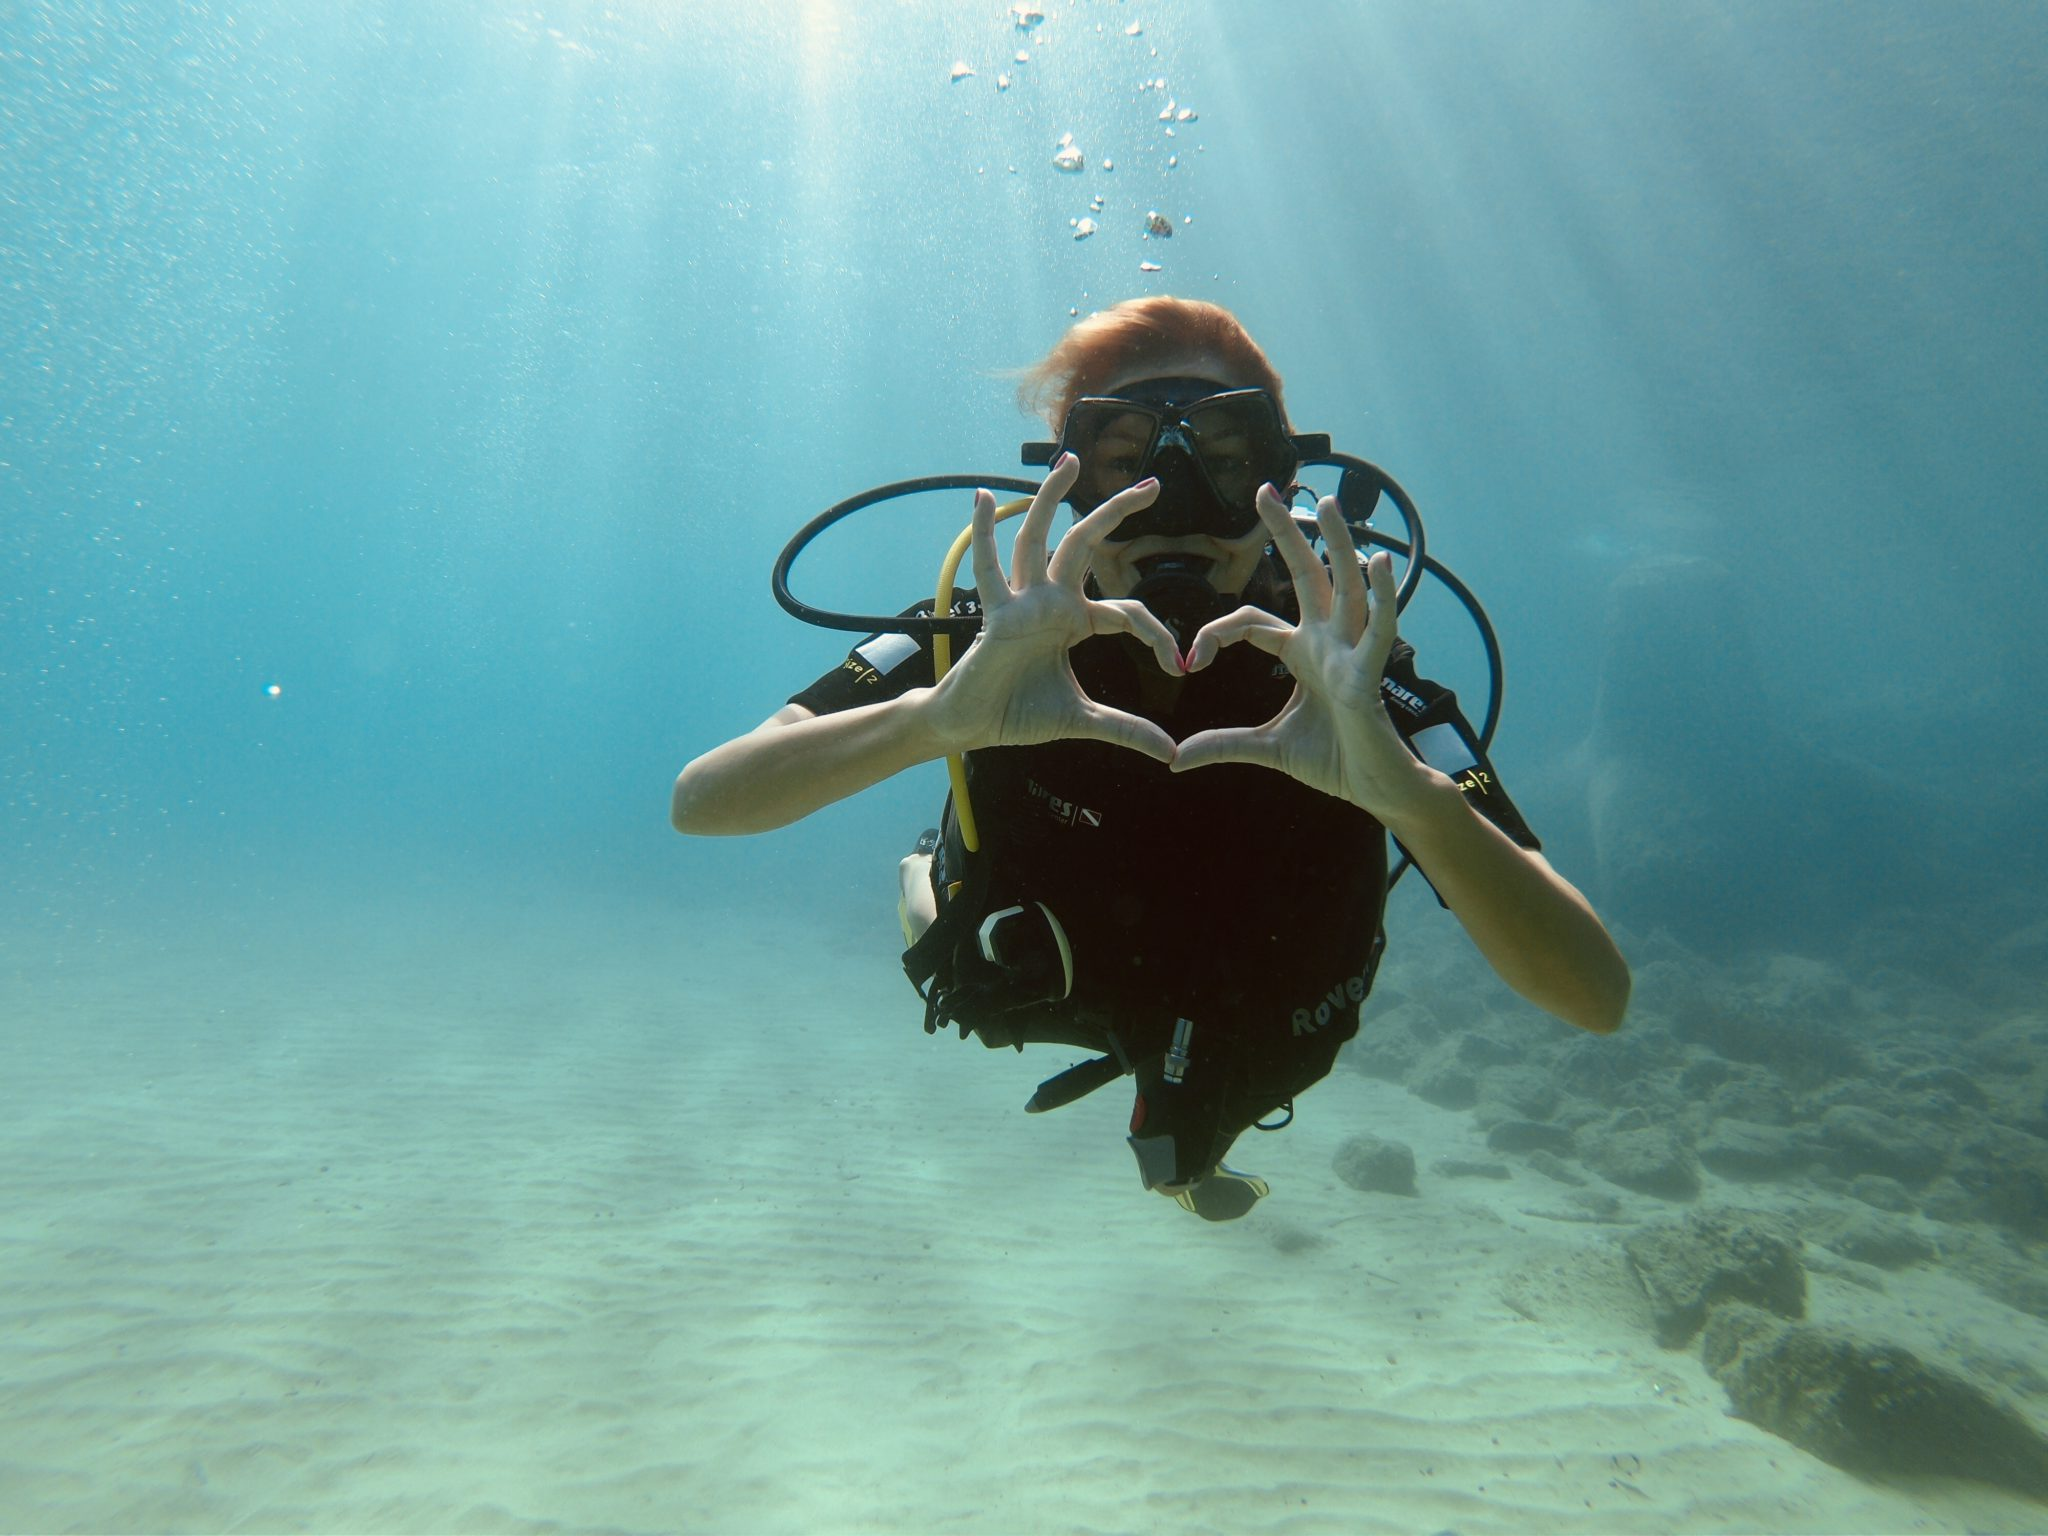 Try scuba diving in Italy: Beginner dive course on Elba Island